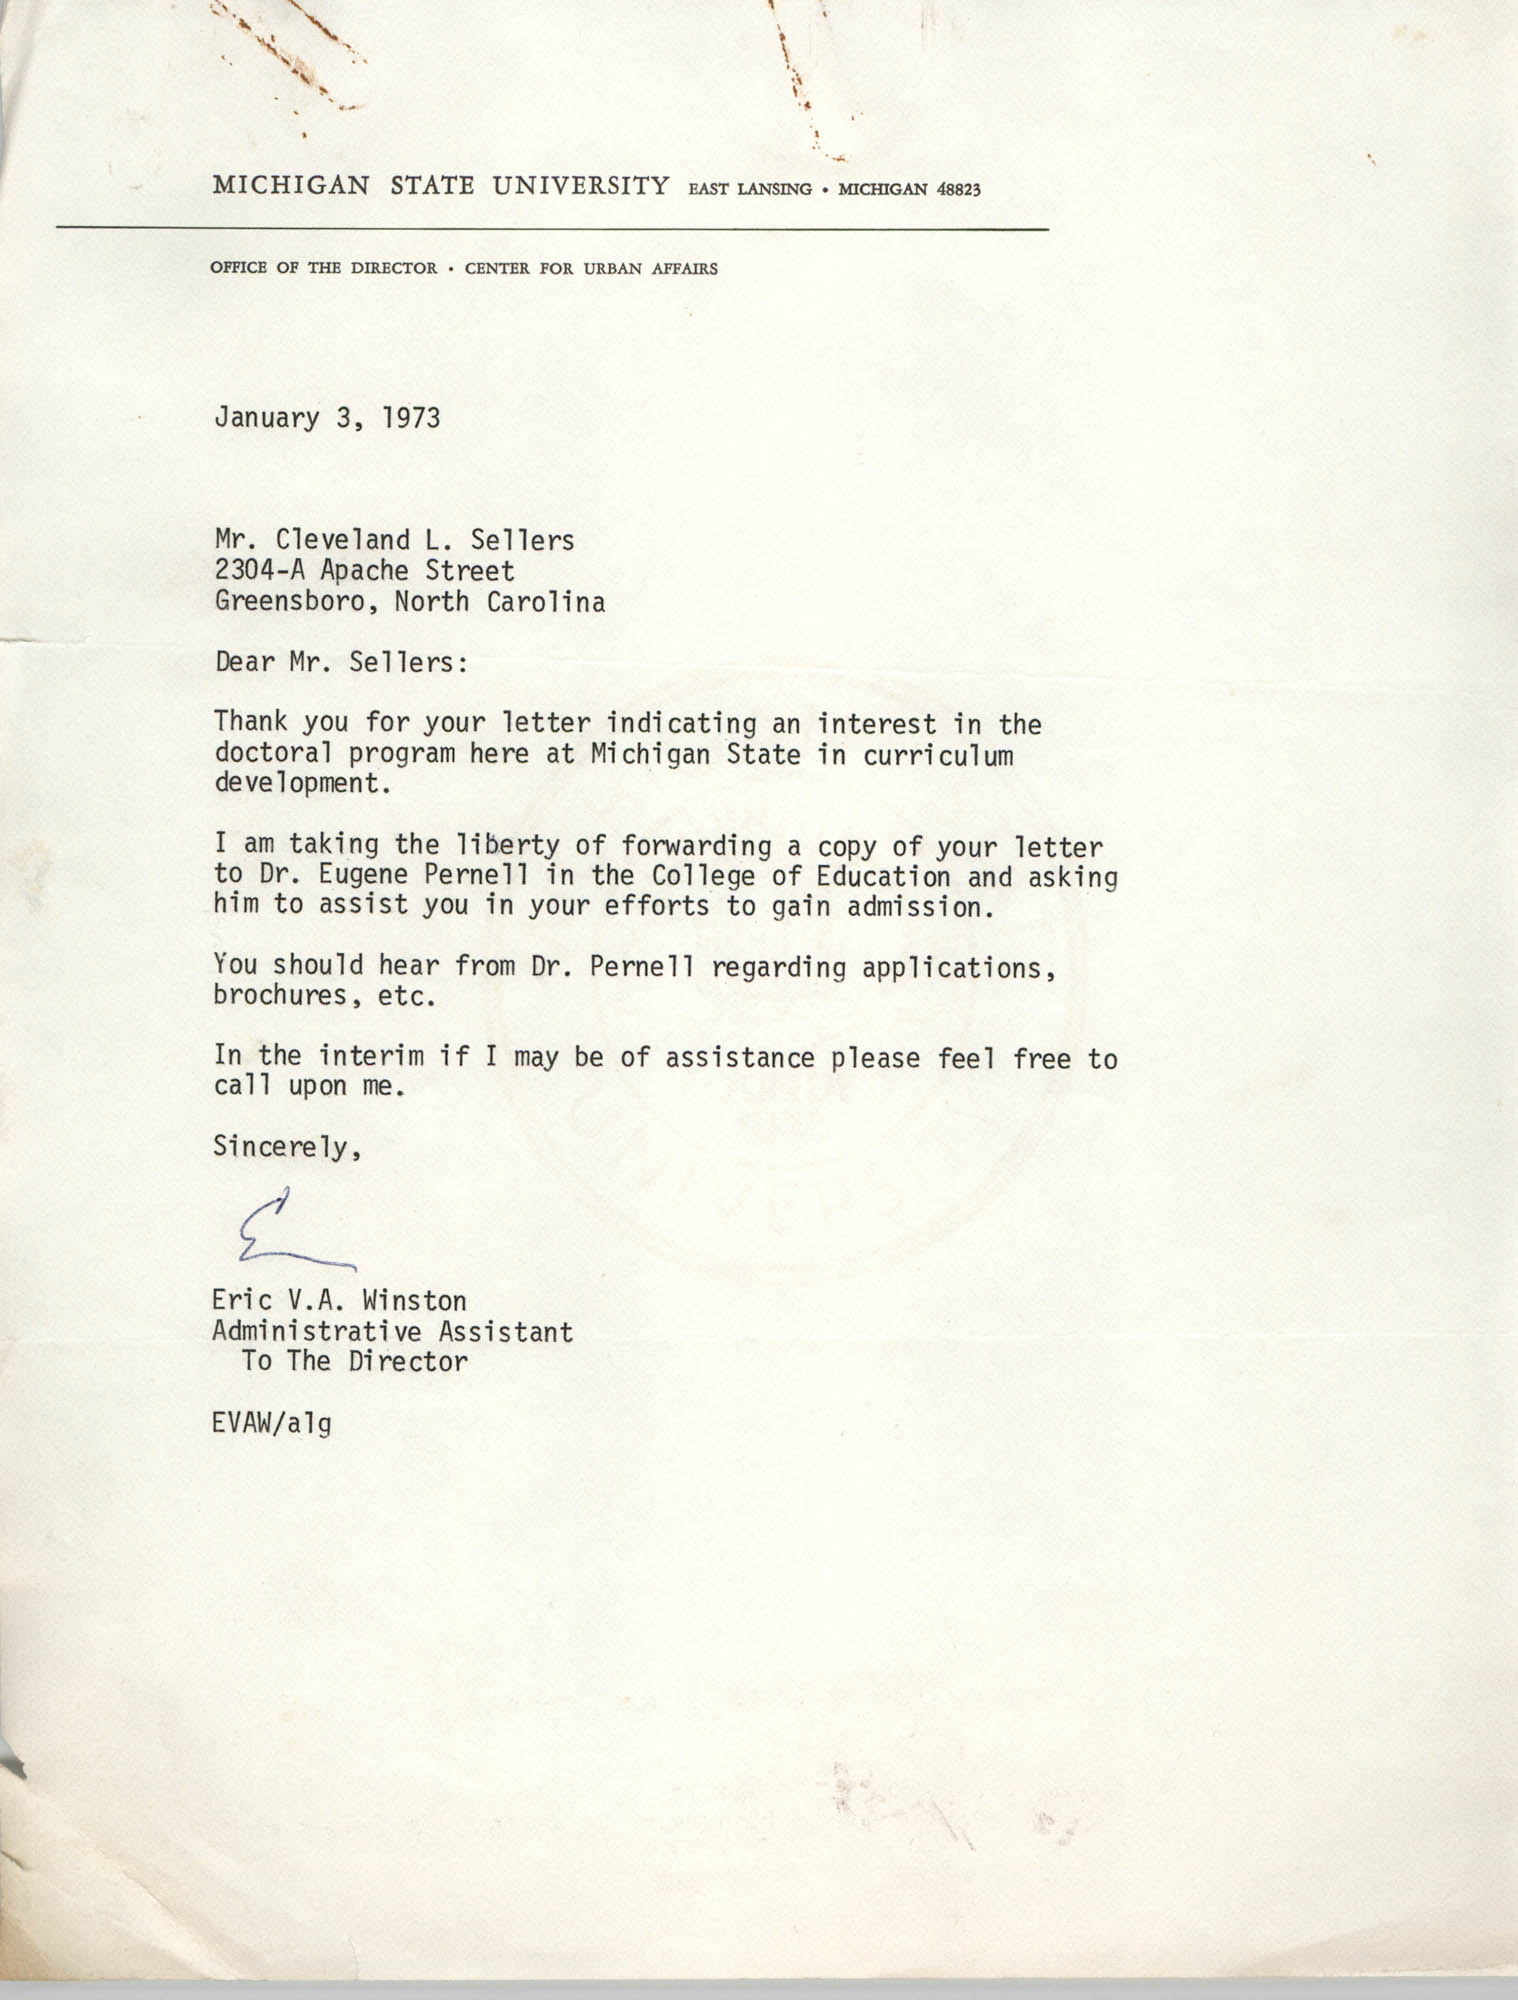 Letter from Eric V. A. Winston to Cleveland Sellers, January 3, 1973